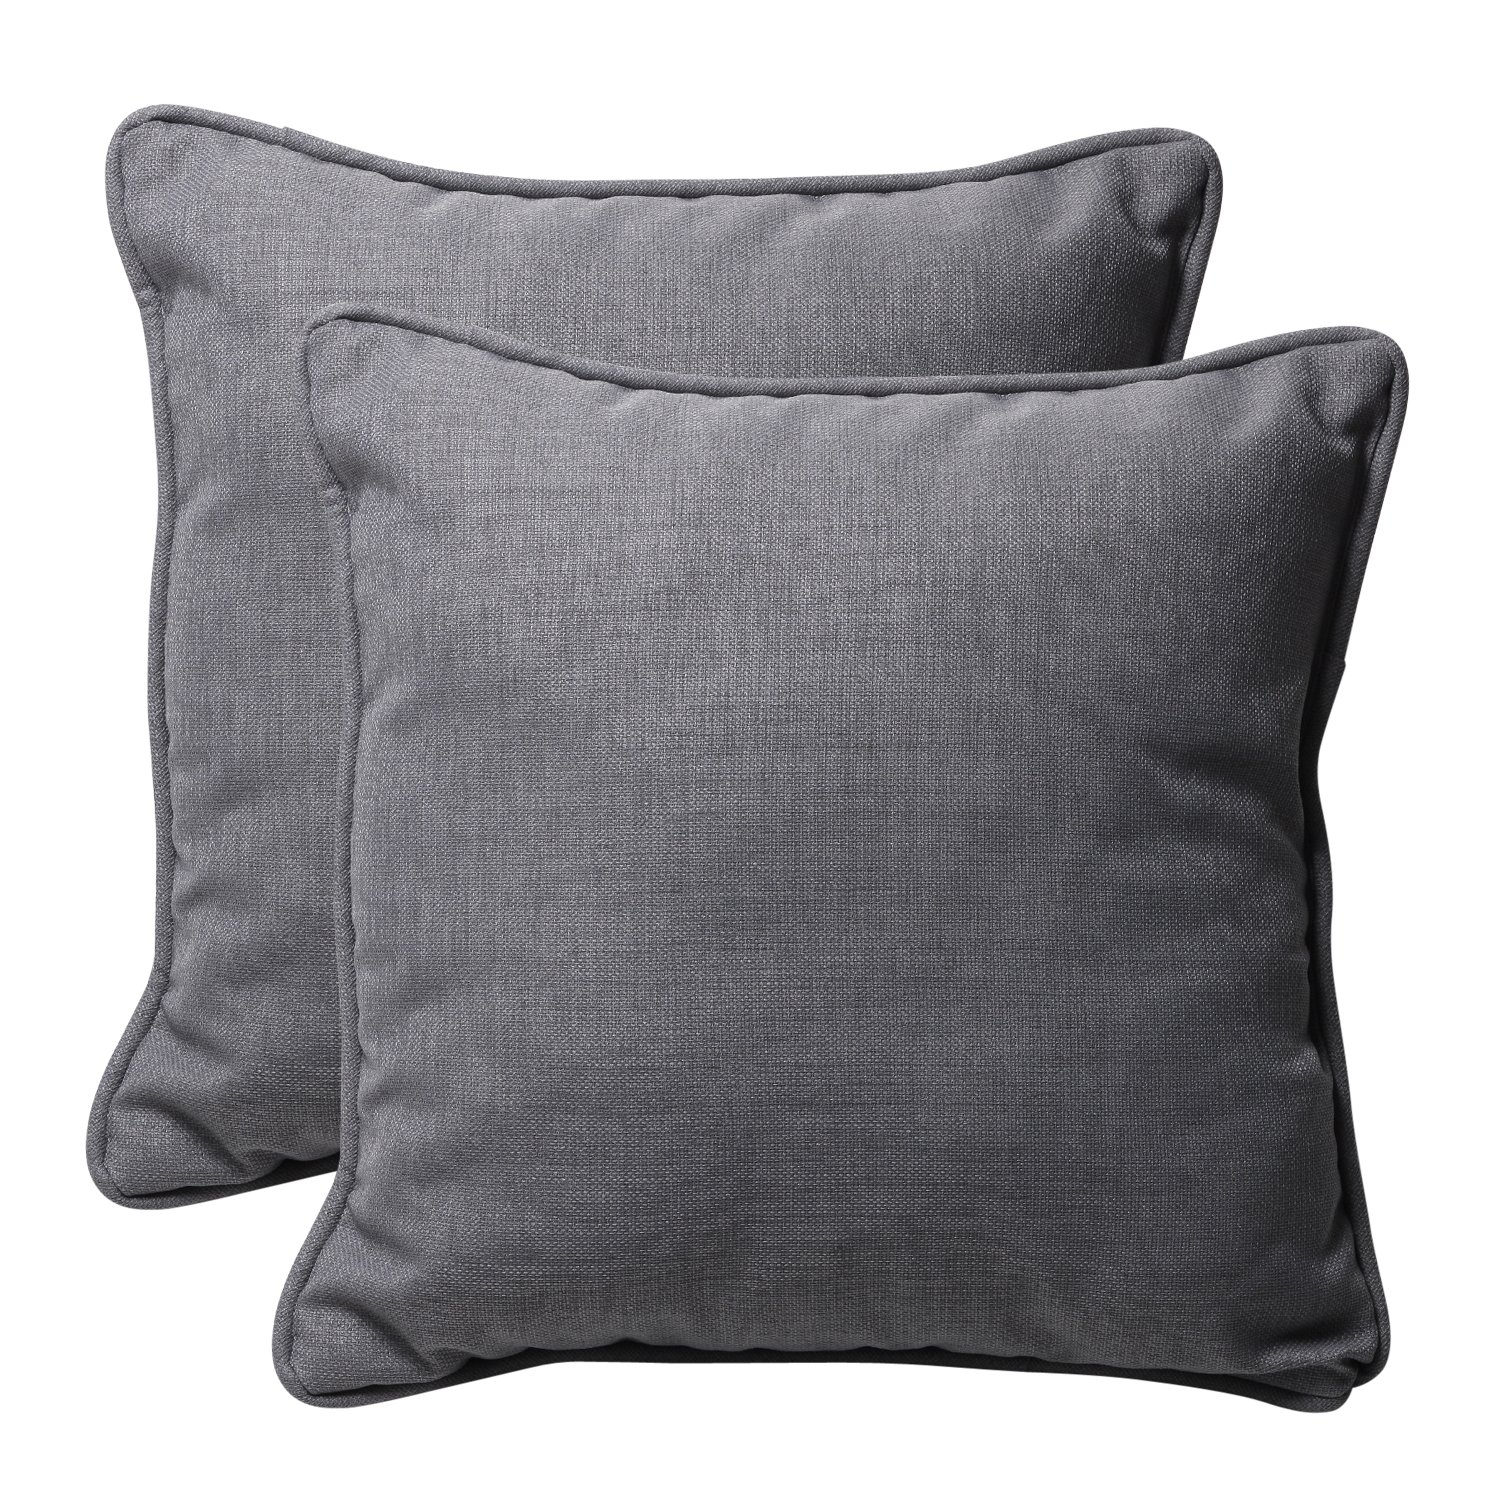 amazoncom pillow perfect decorative gray textured solid square  - amazoncom pillow perfect decorative gray textured solid square tosspillows pack home  kitchen